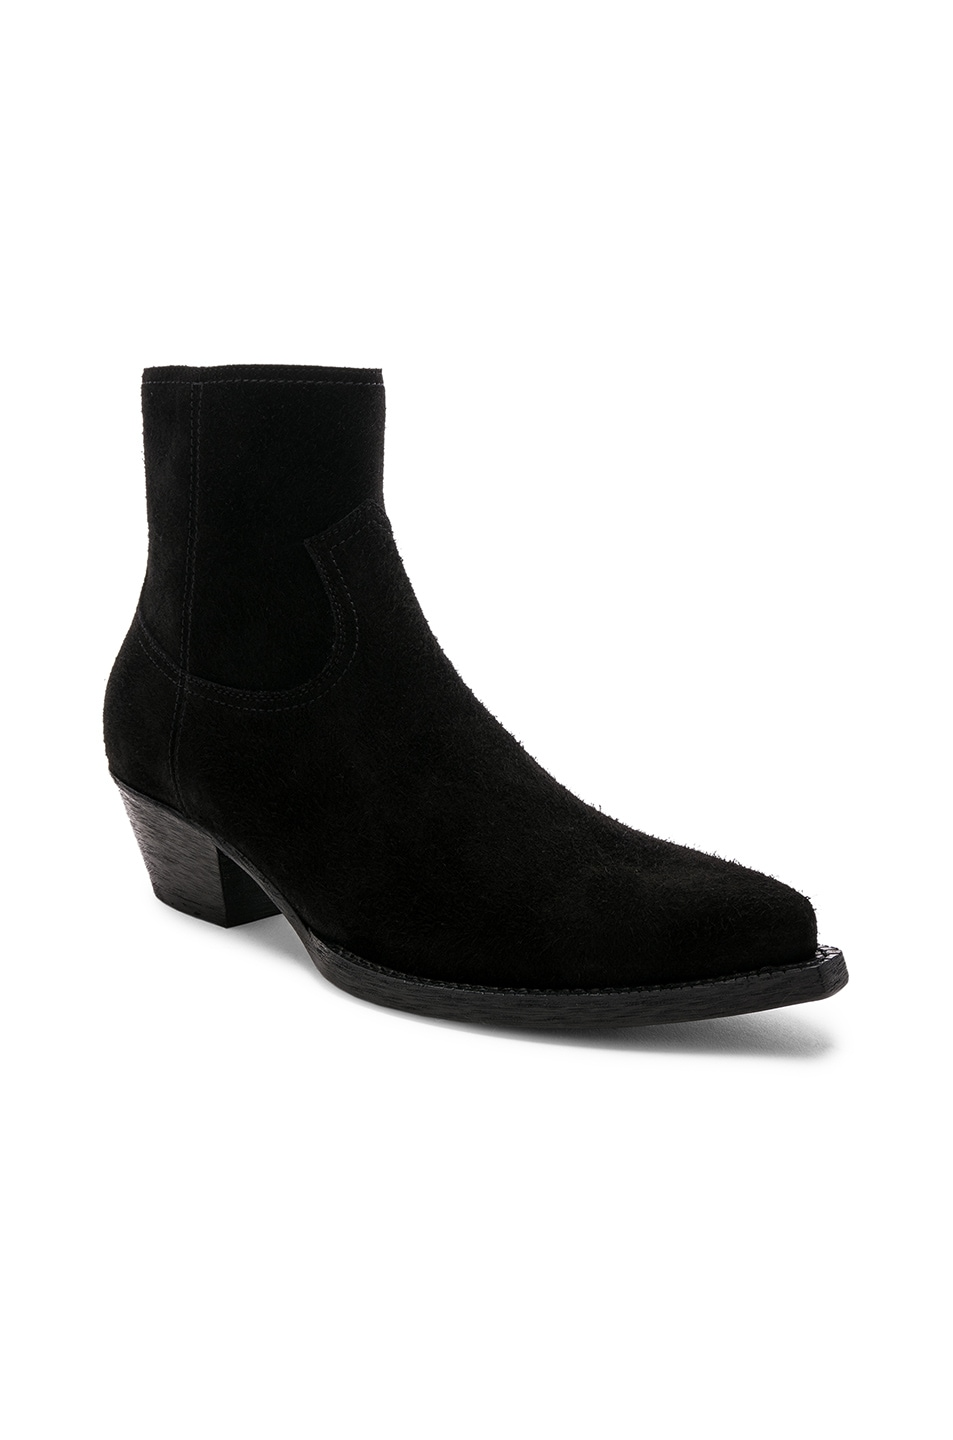 Image 1 of Saint Laurent Suede Lukas 40 Zip Boots in Black